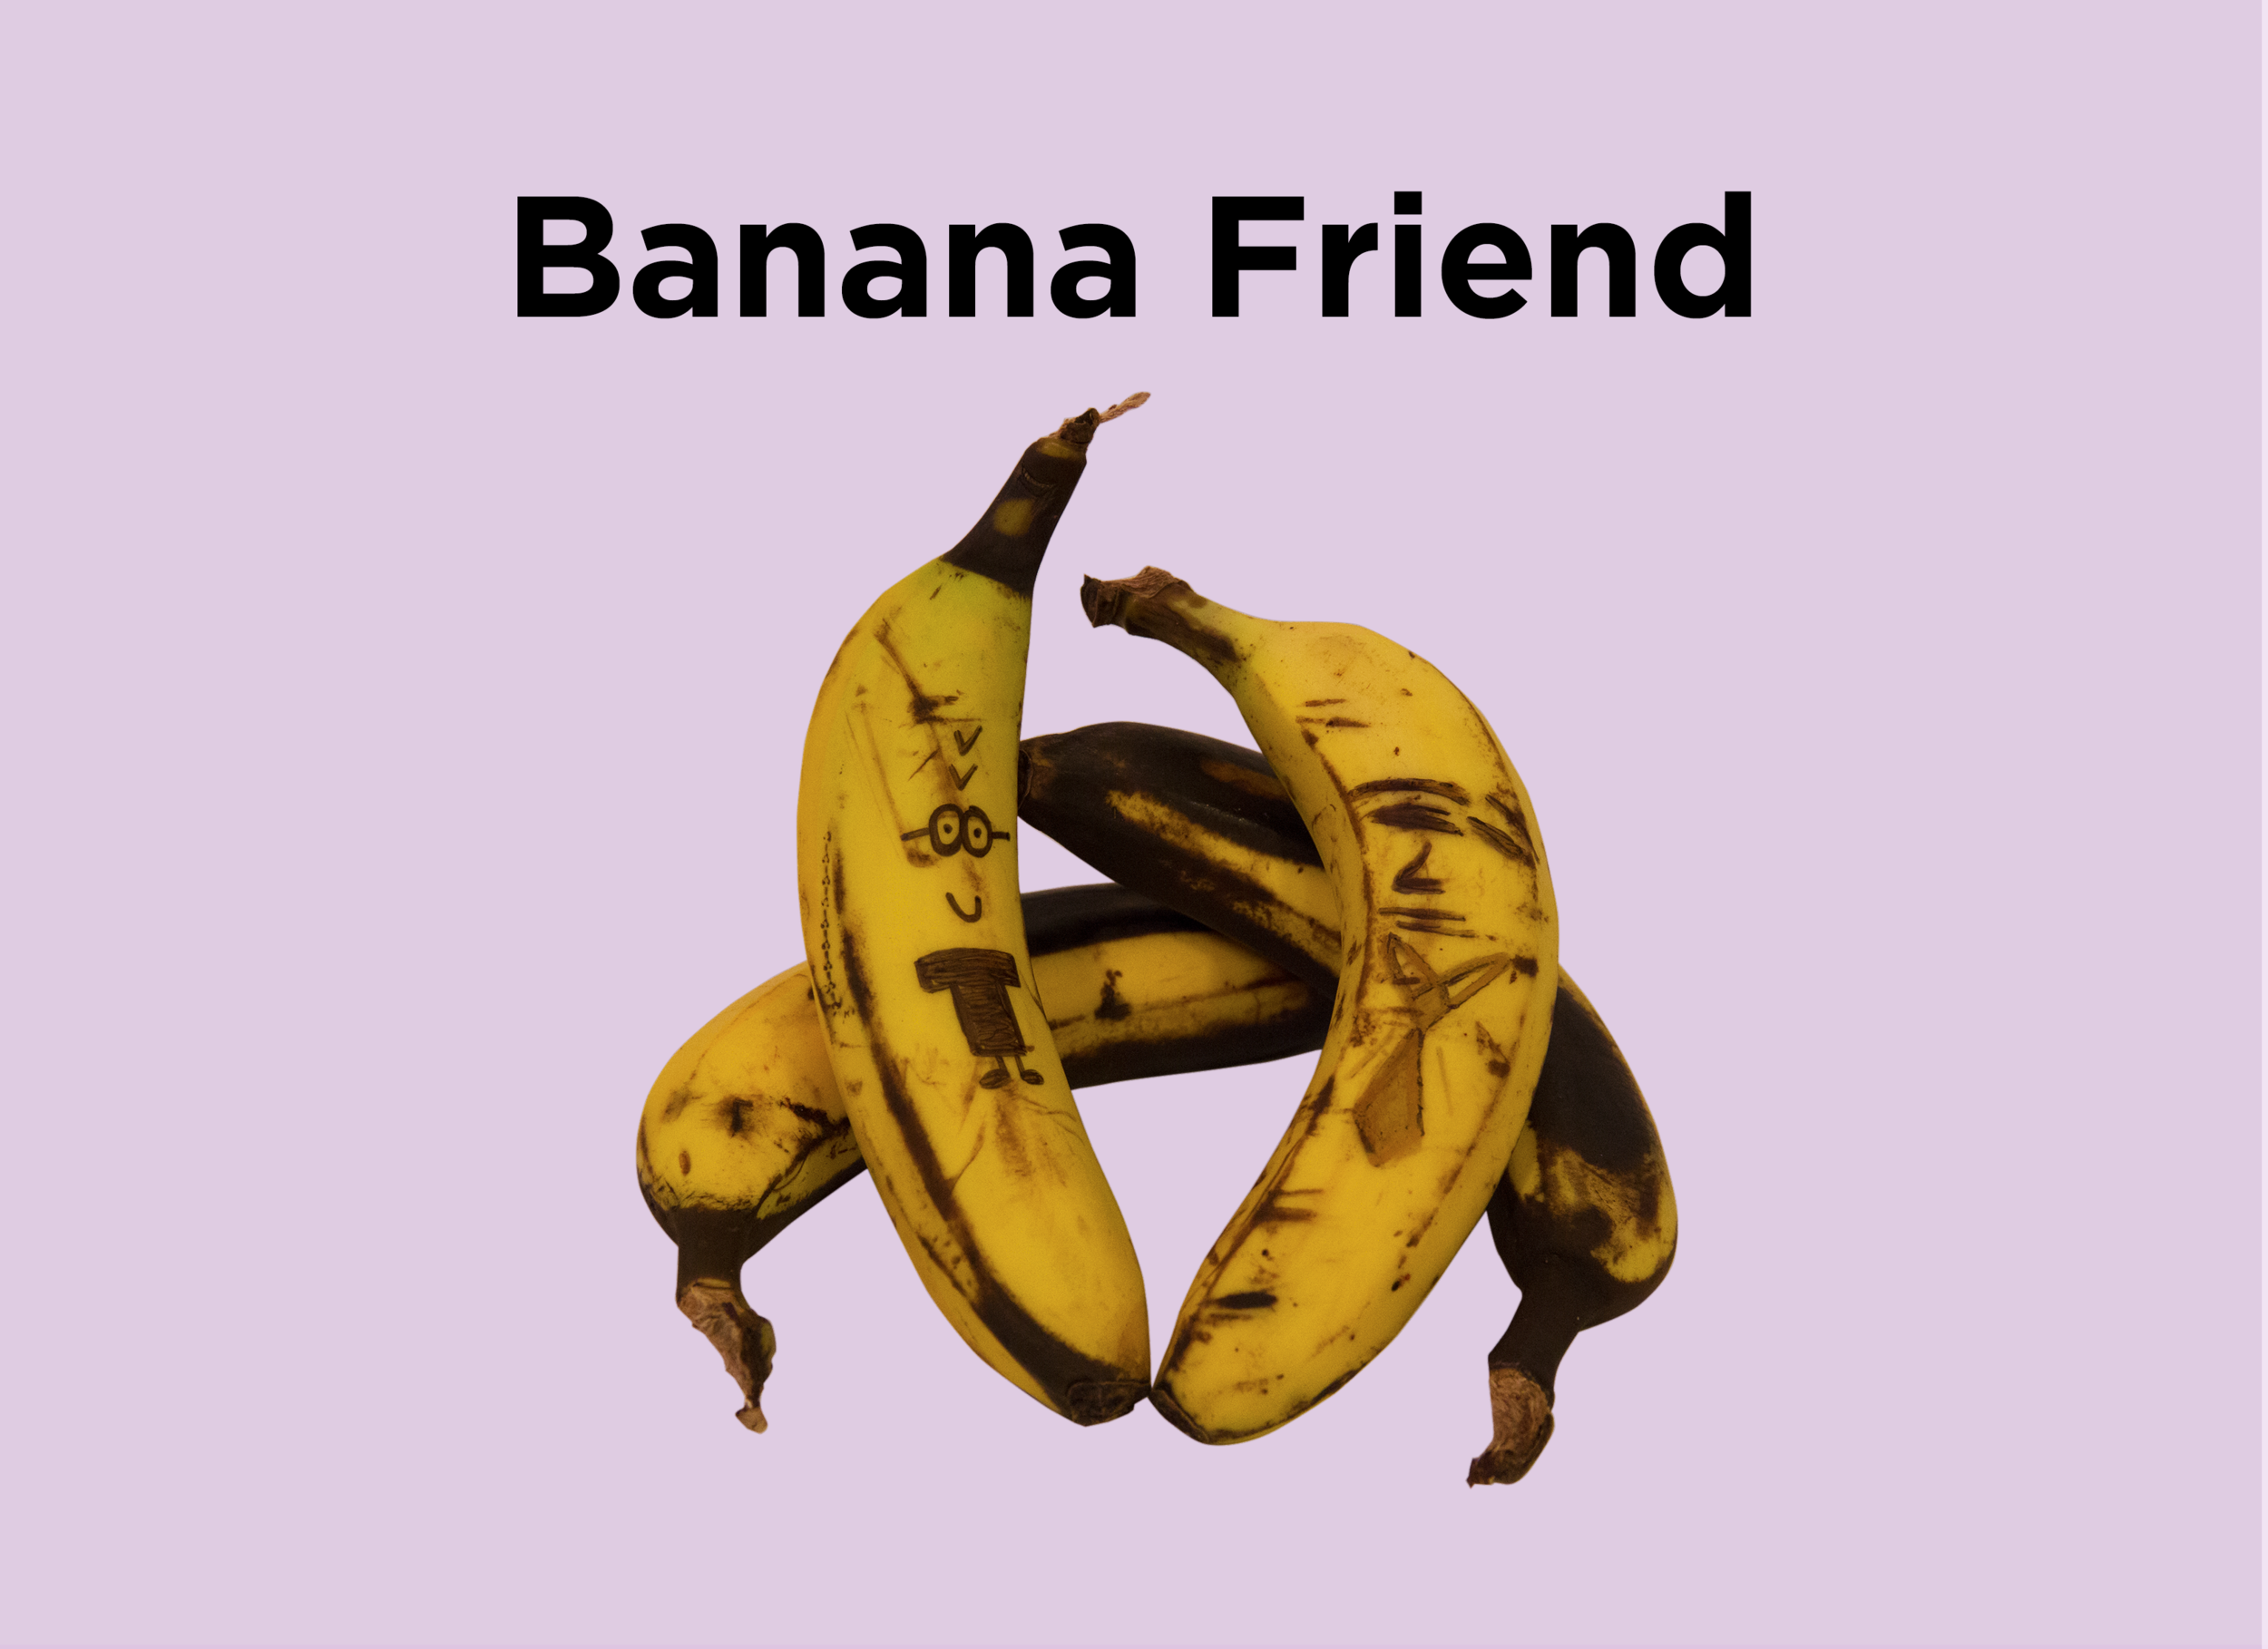 2. Banana Friend.png